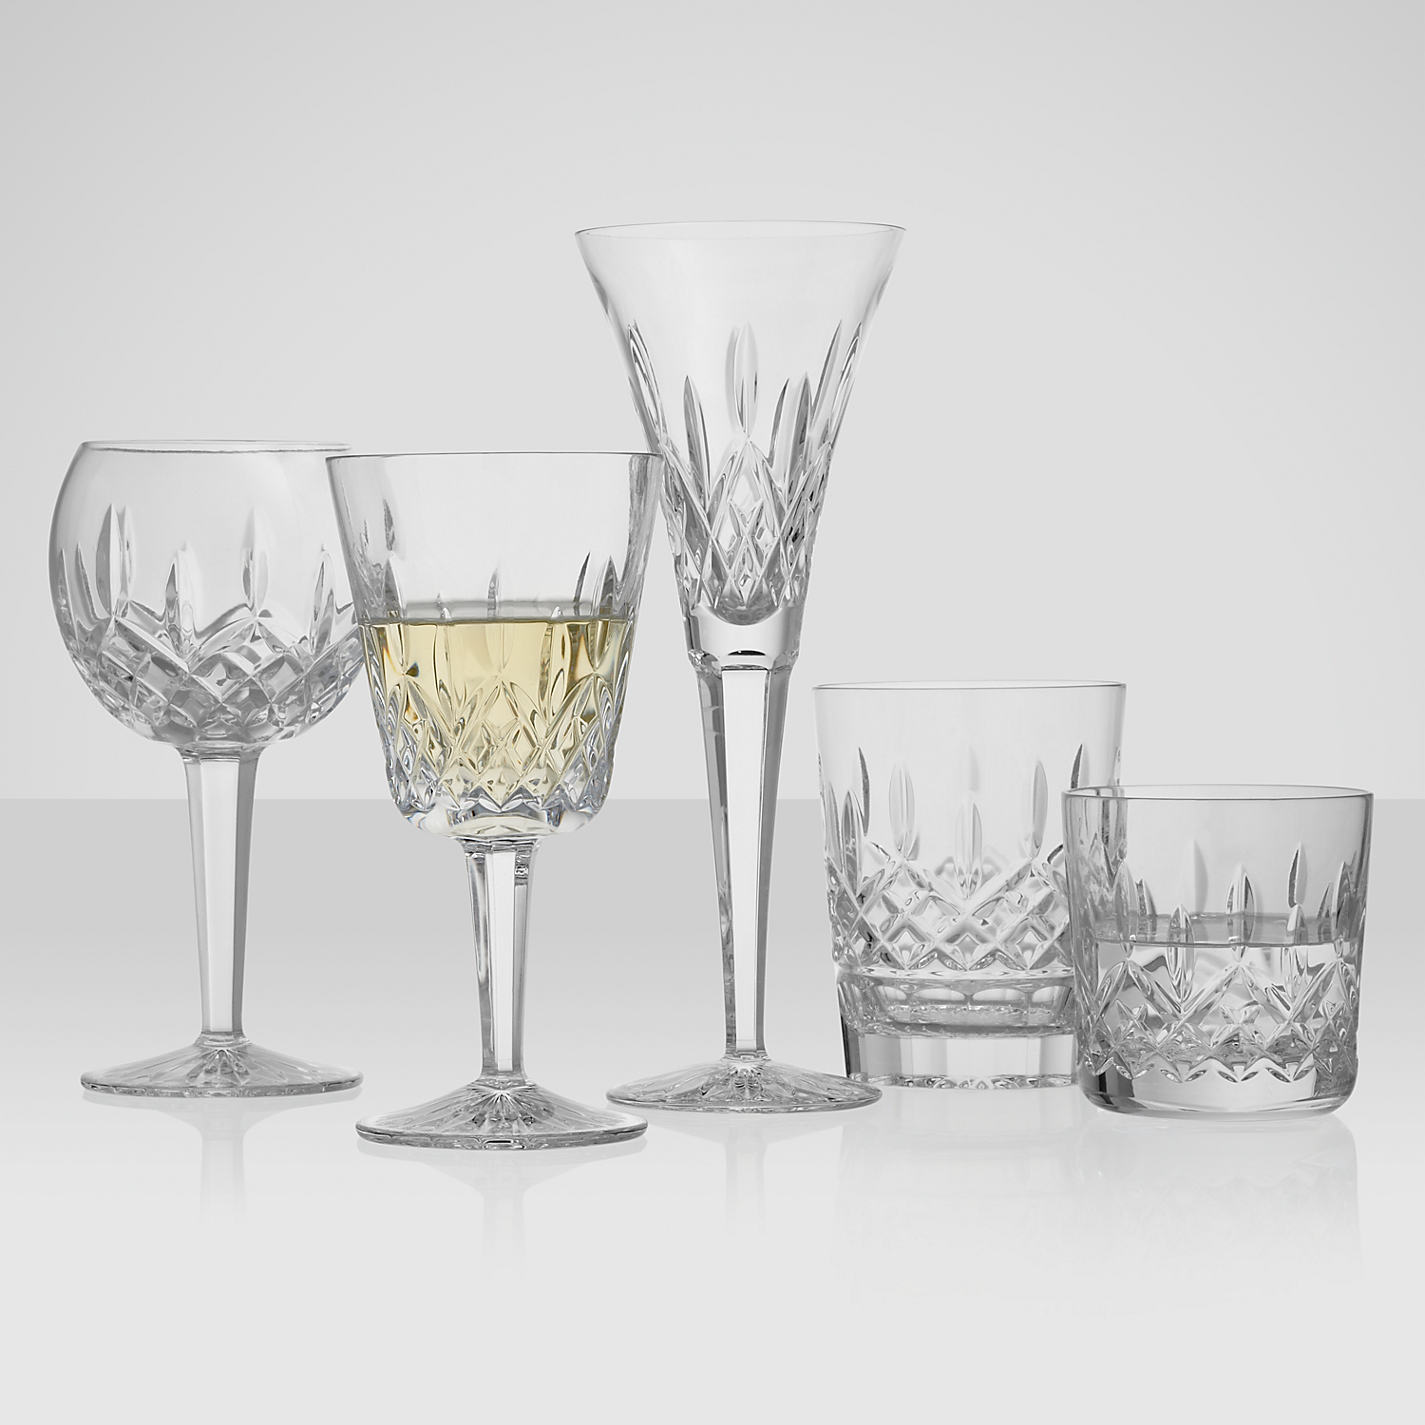 Brilliant waterford crystal patterns for dining sets ideas with waterford crystal glass patterns